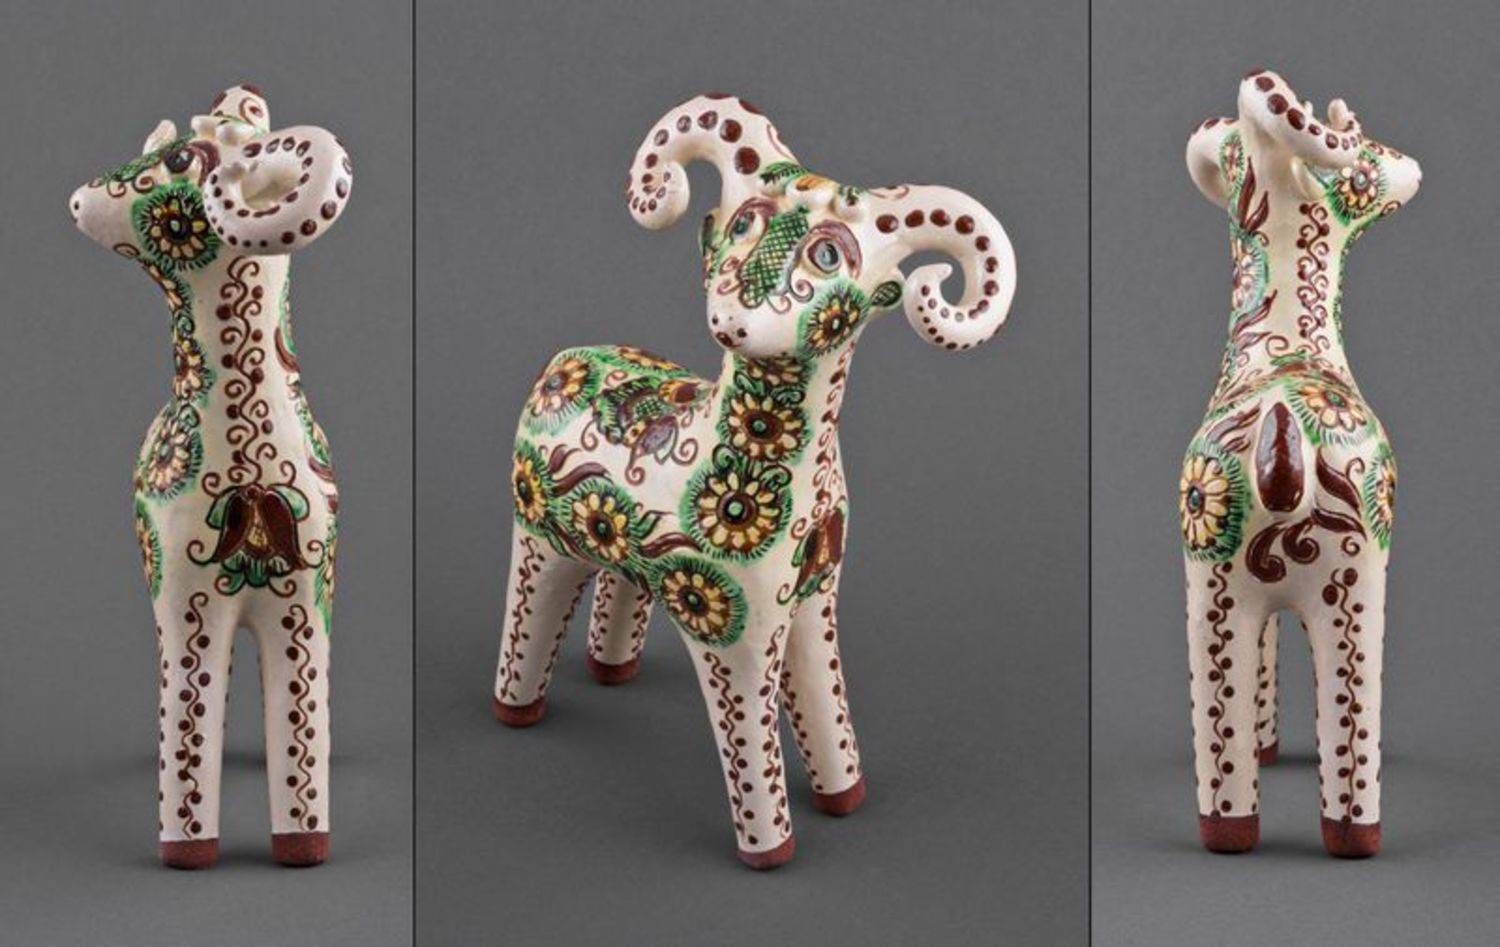 A set of clay figurines Baby Deers photo 5